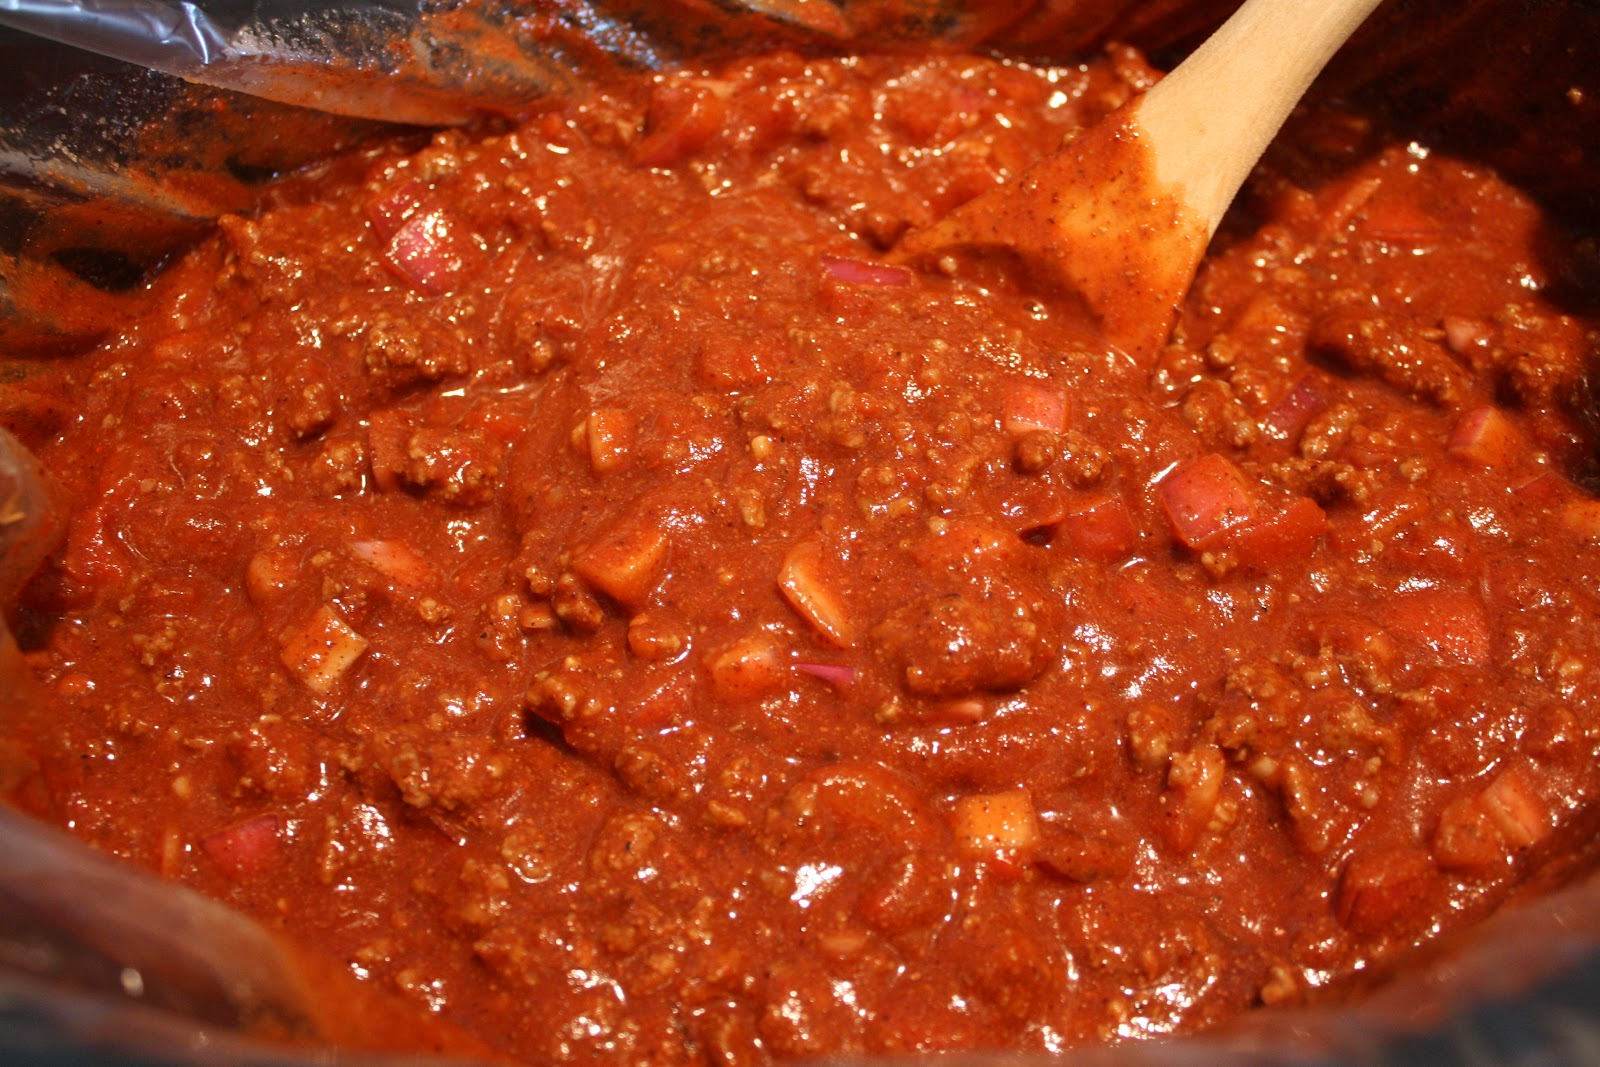 ... chili over pasta and top with shredded cheese for a perfect 3-way